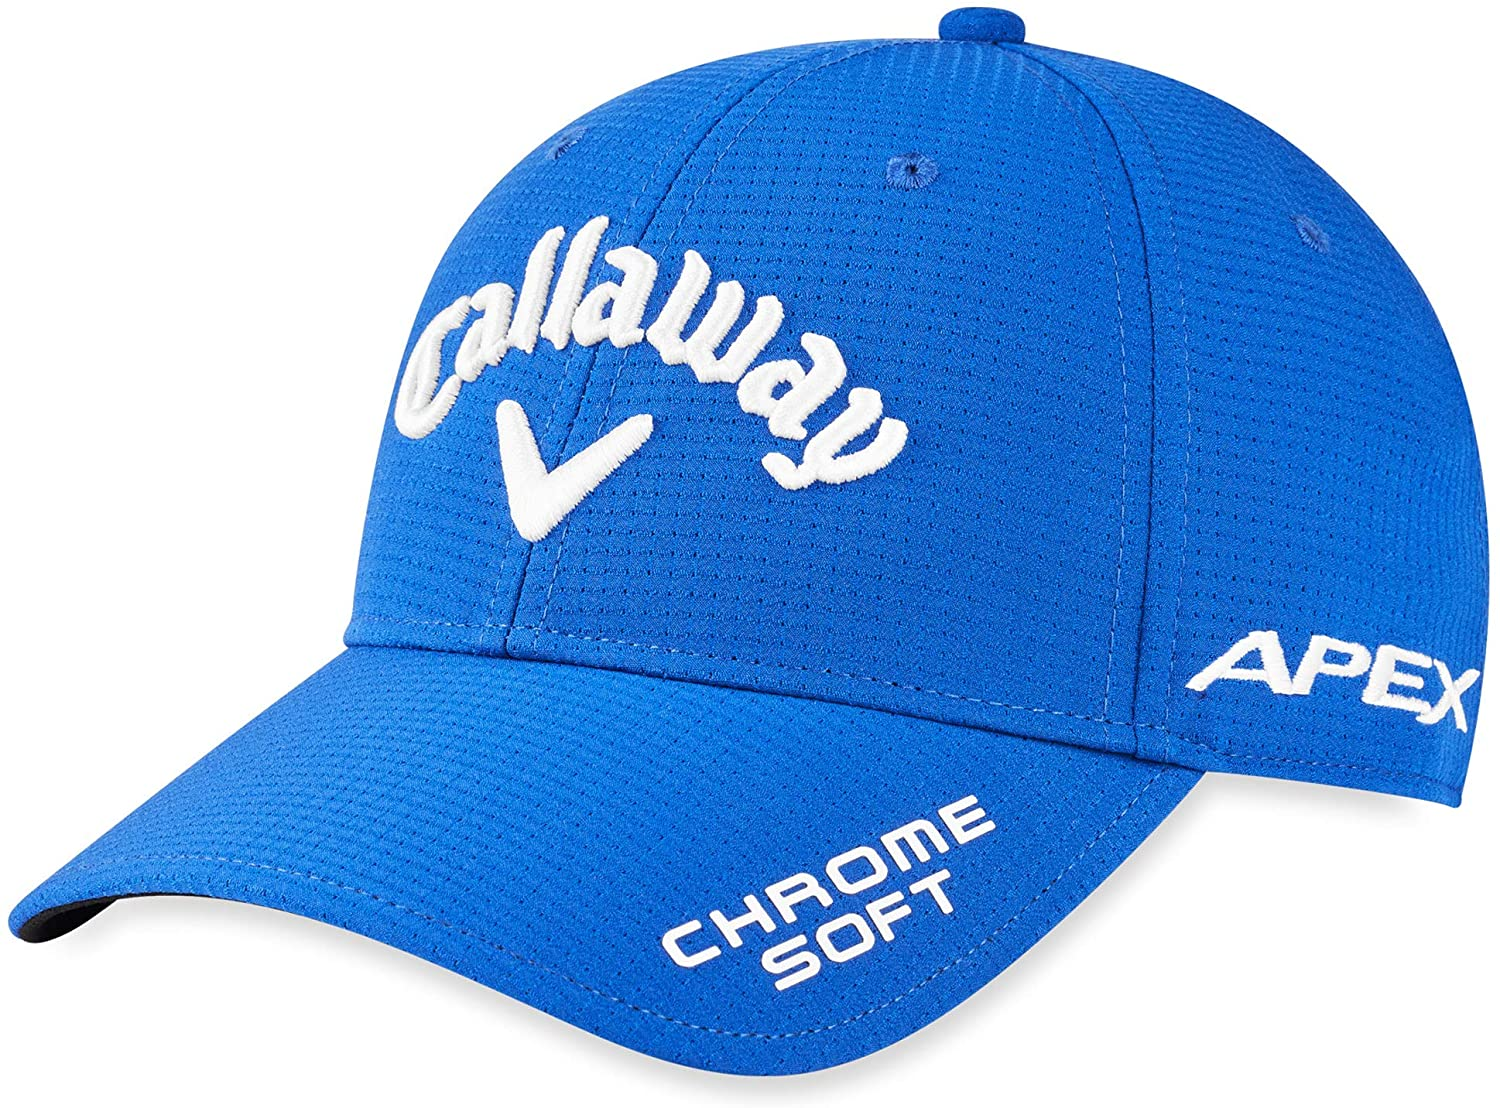 Callaway Golf 2020 Tour Authentic Performance Pro Hat